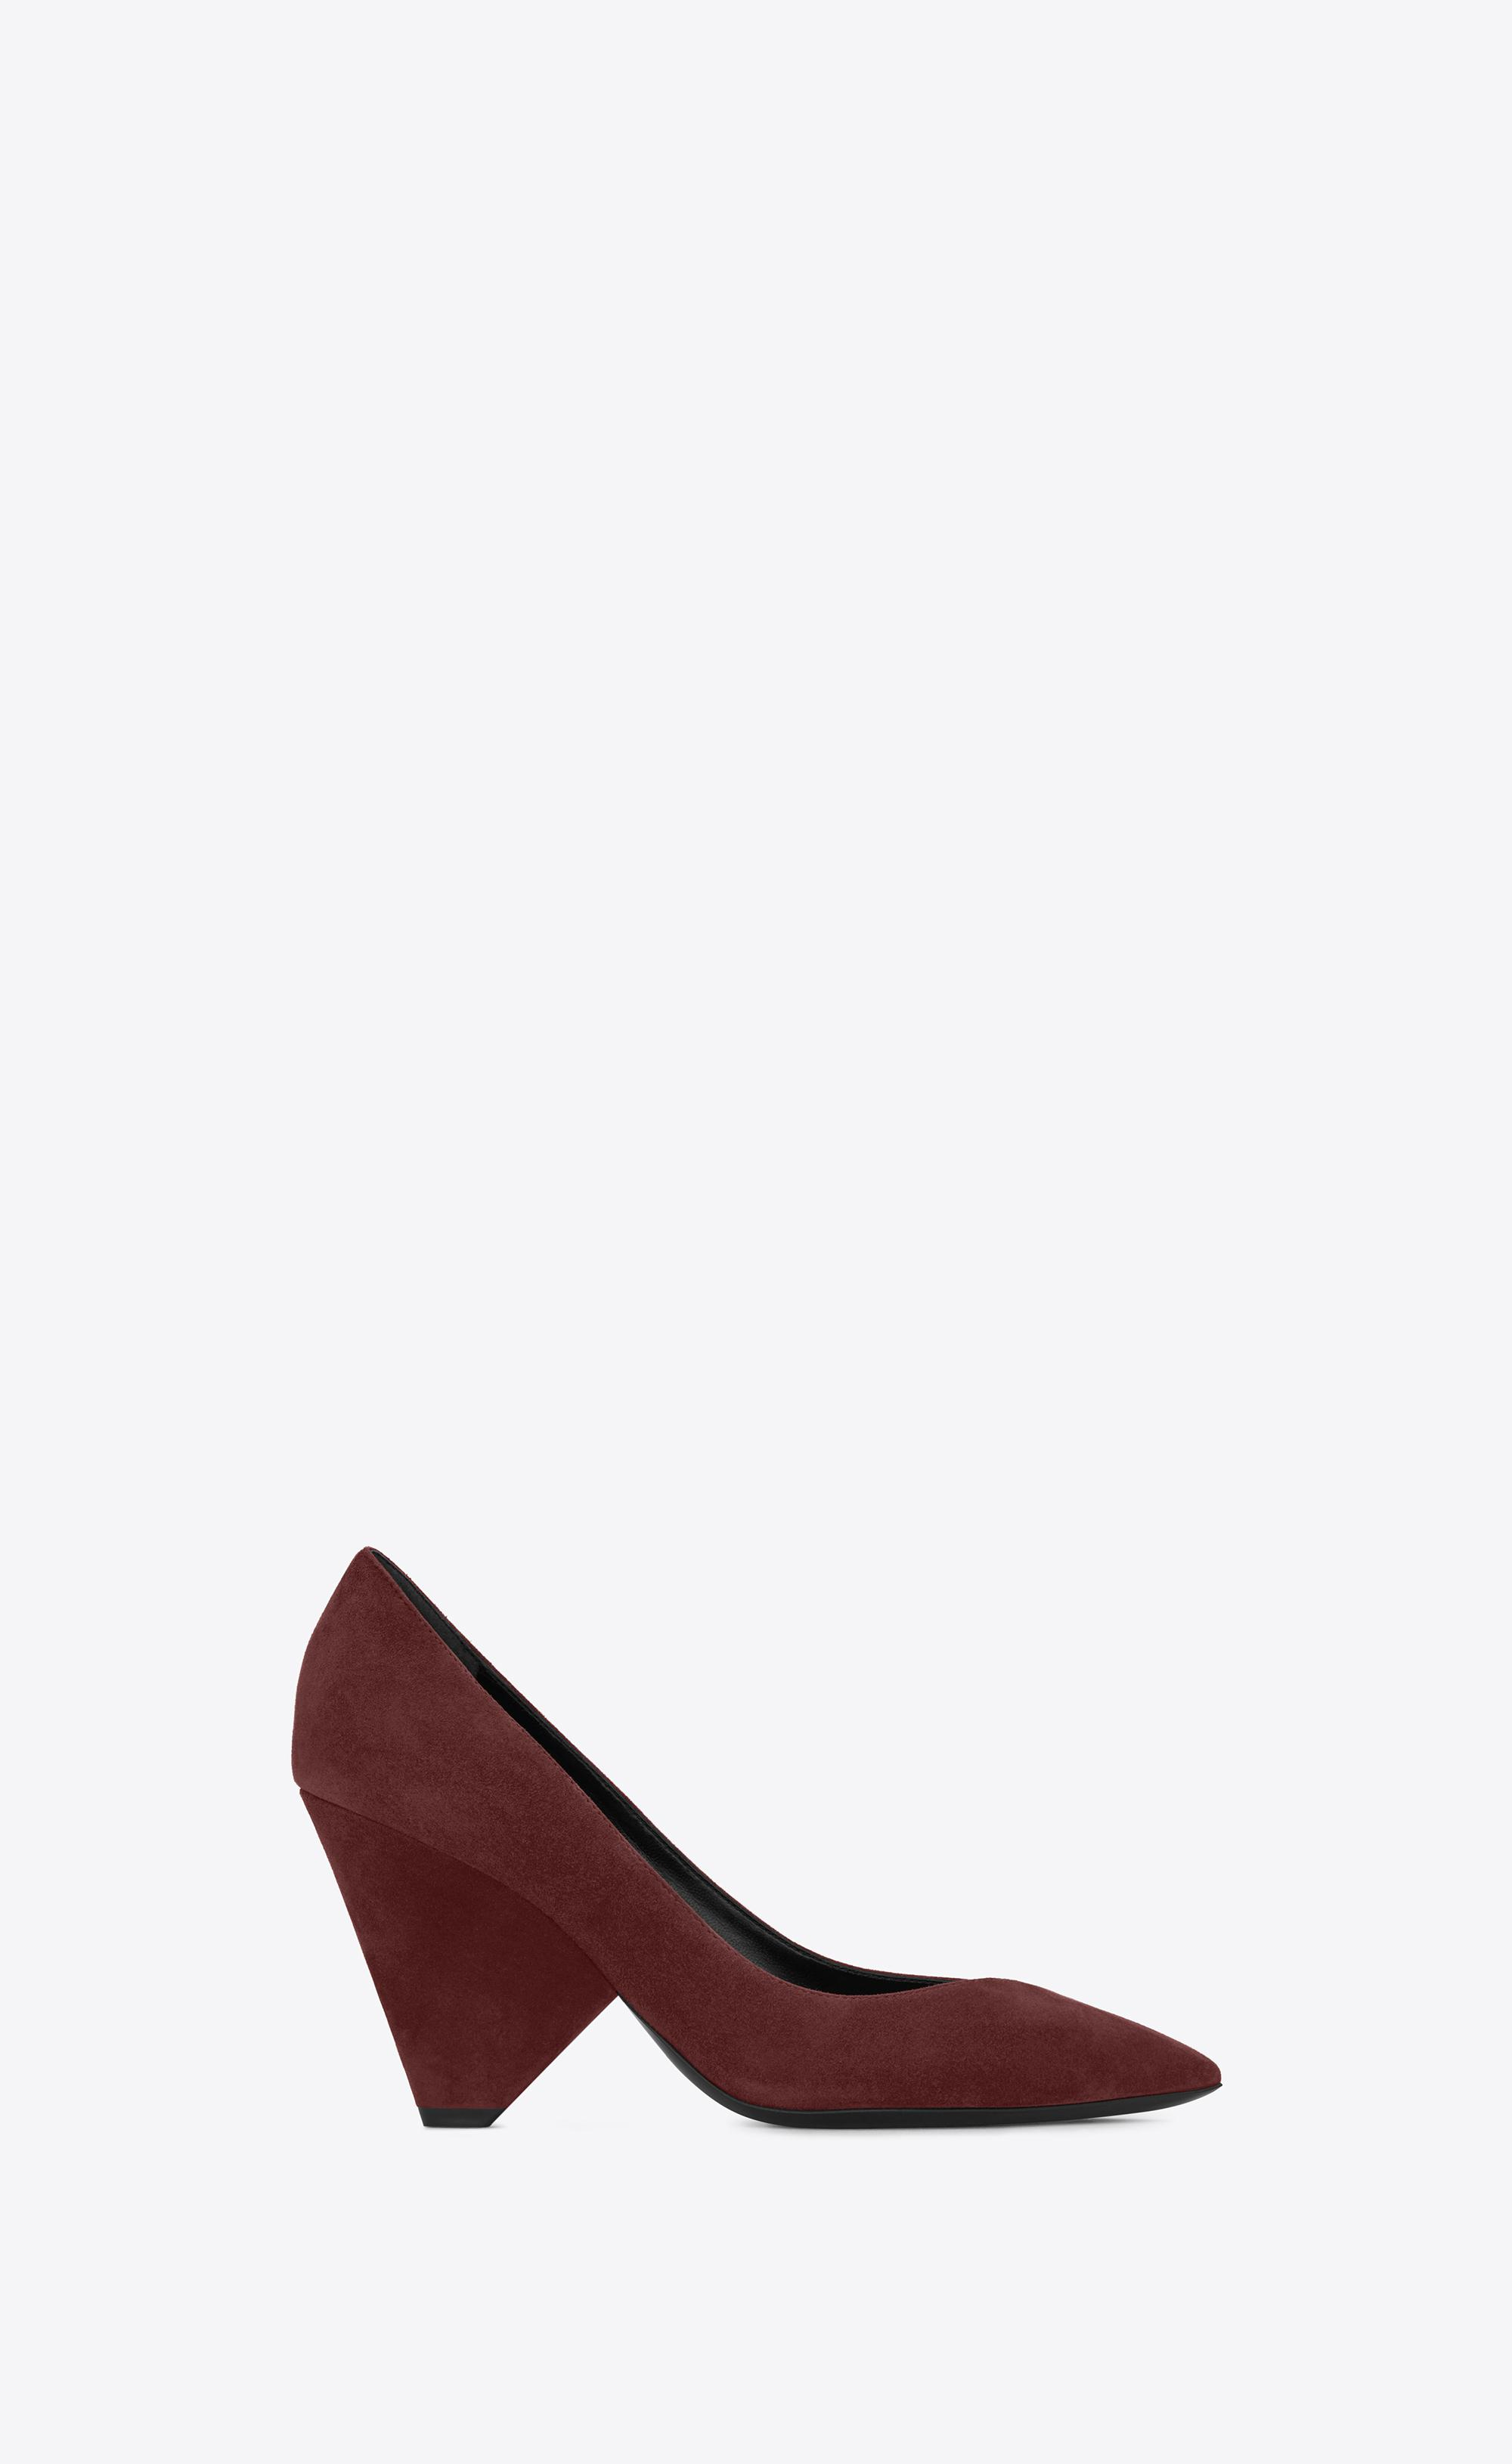 53472fc25afa Lyst - Saint Laurent Niki 85 Pump Shoe In Burgundy Suede